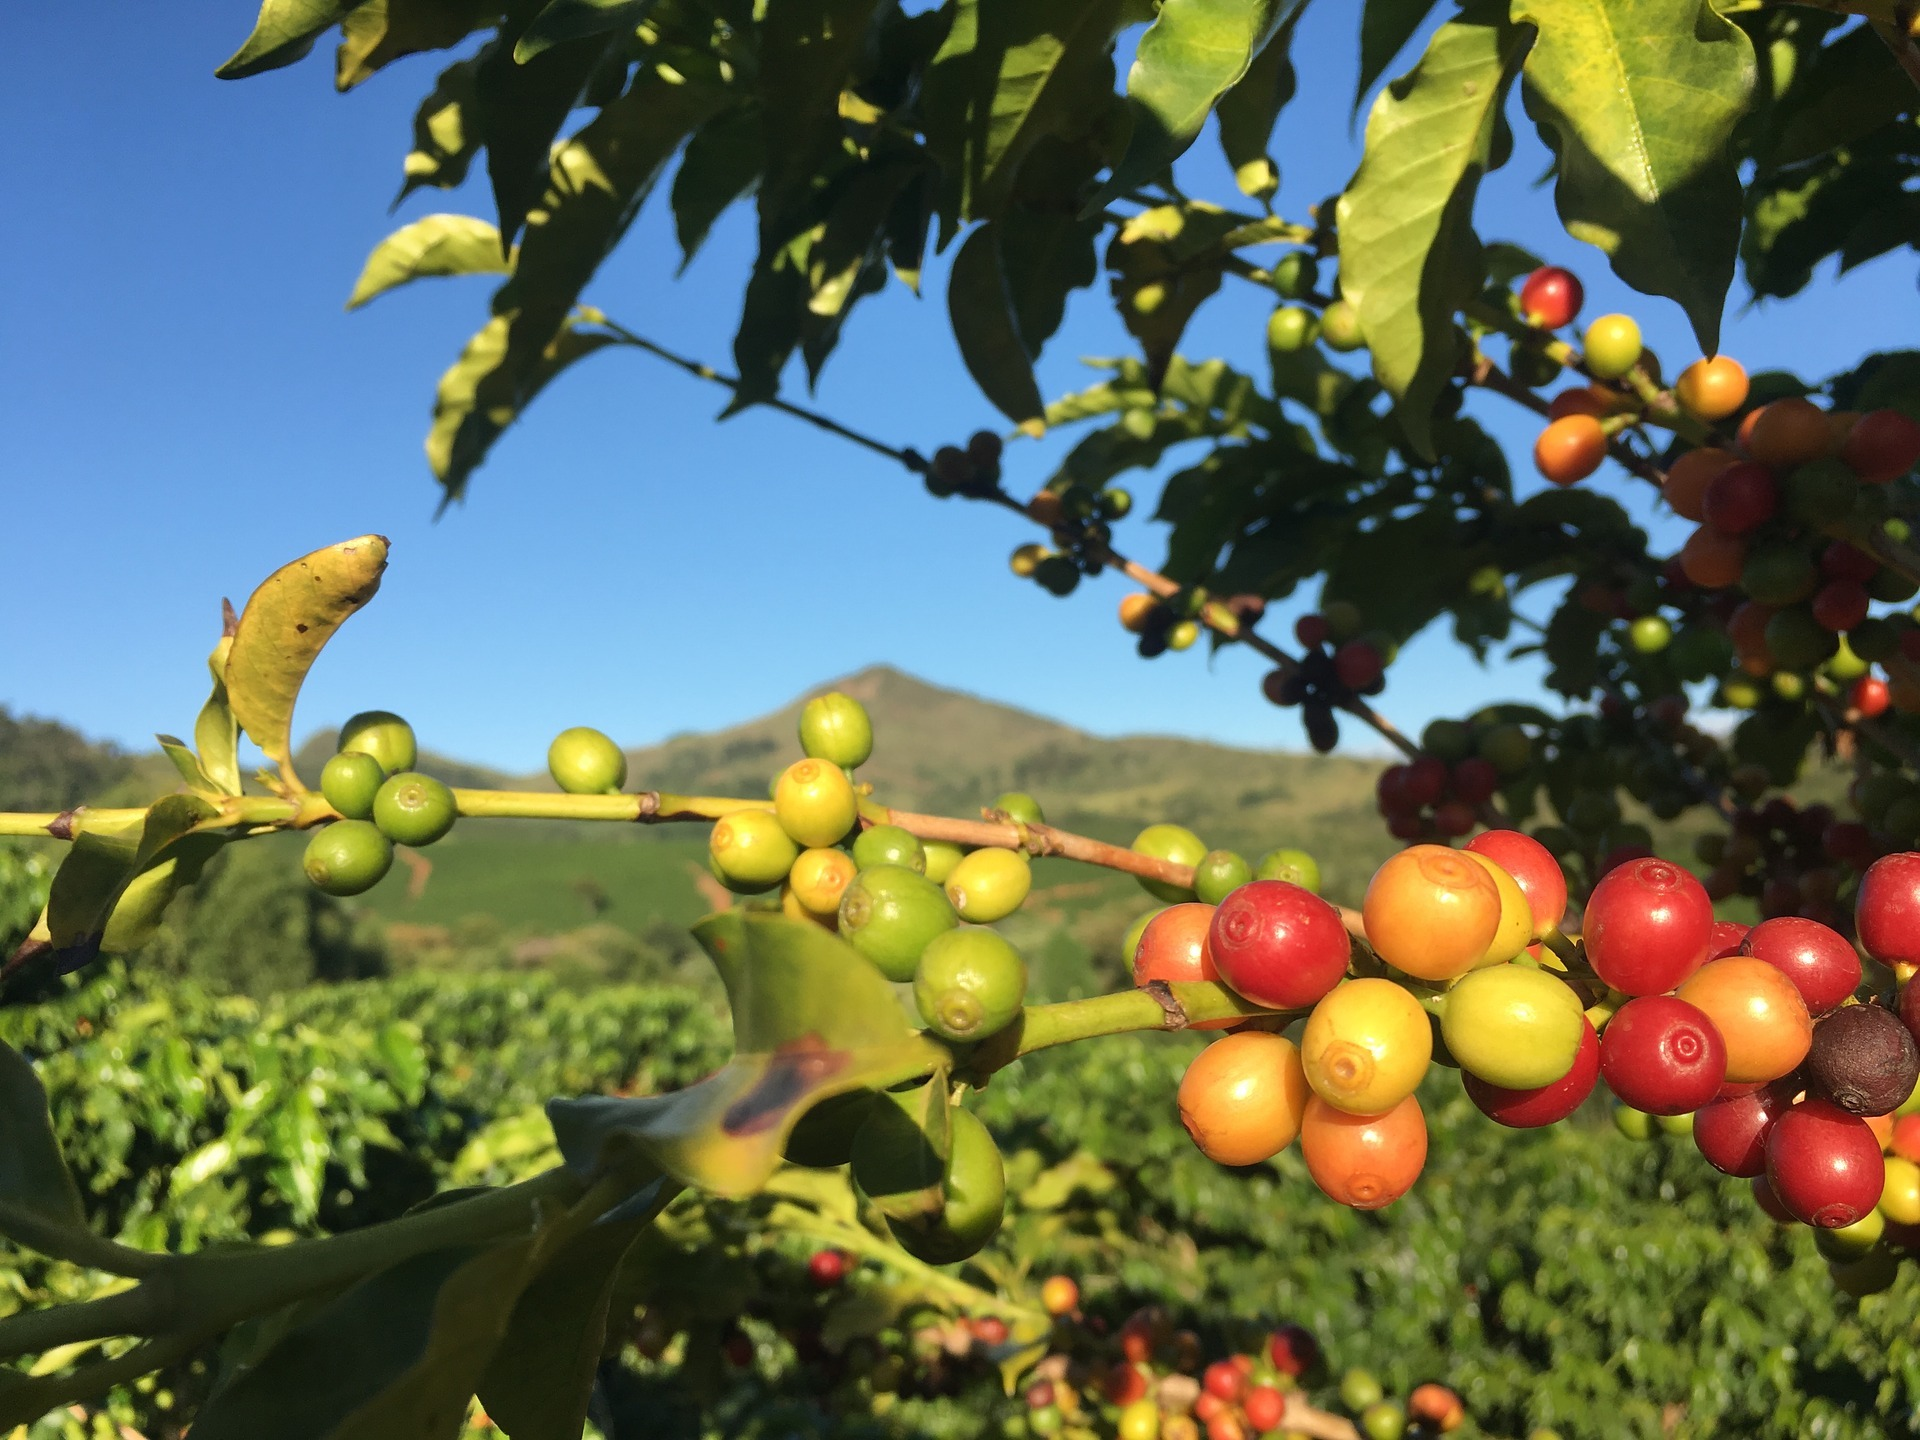 Coffee Cherries ripening on coffee plant